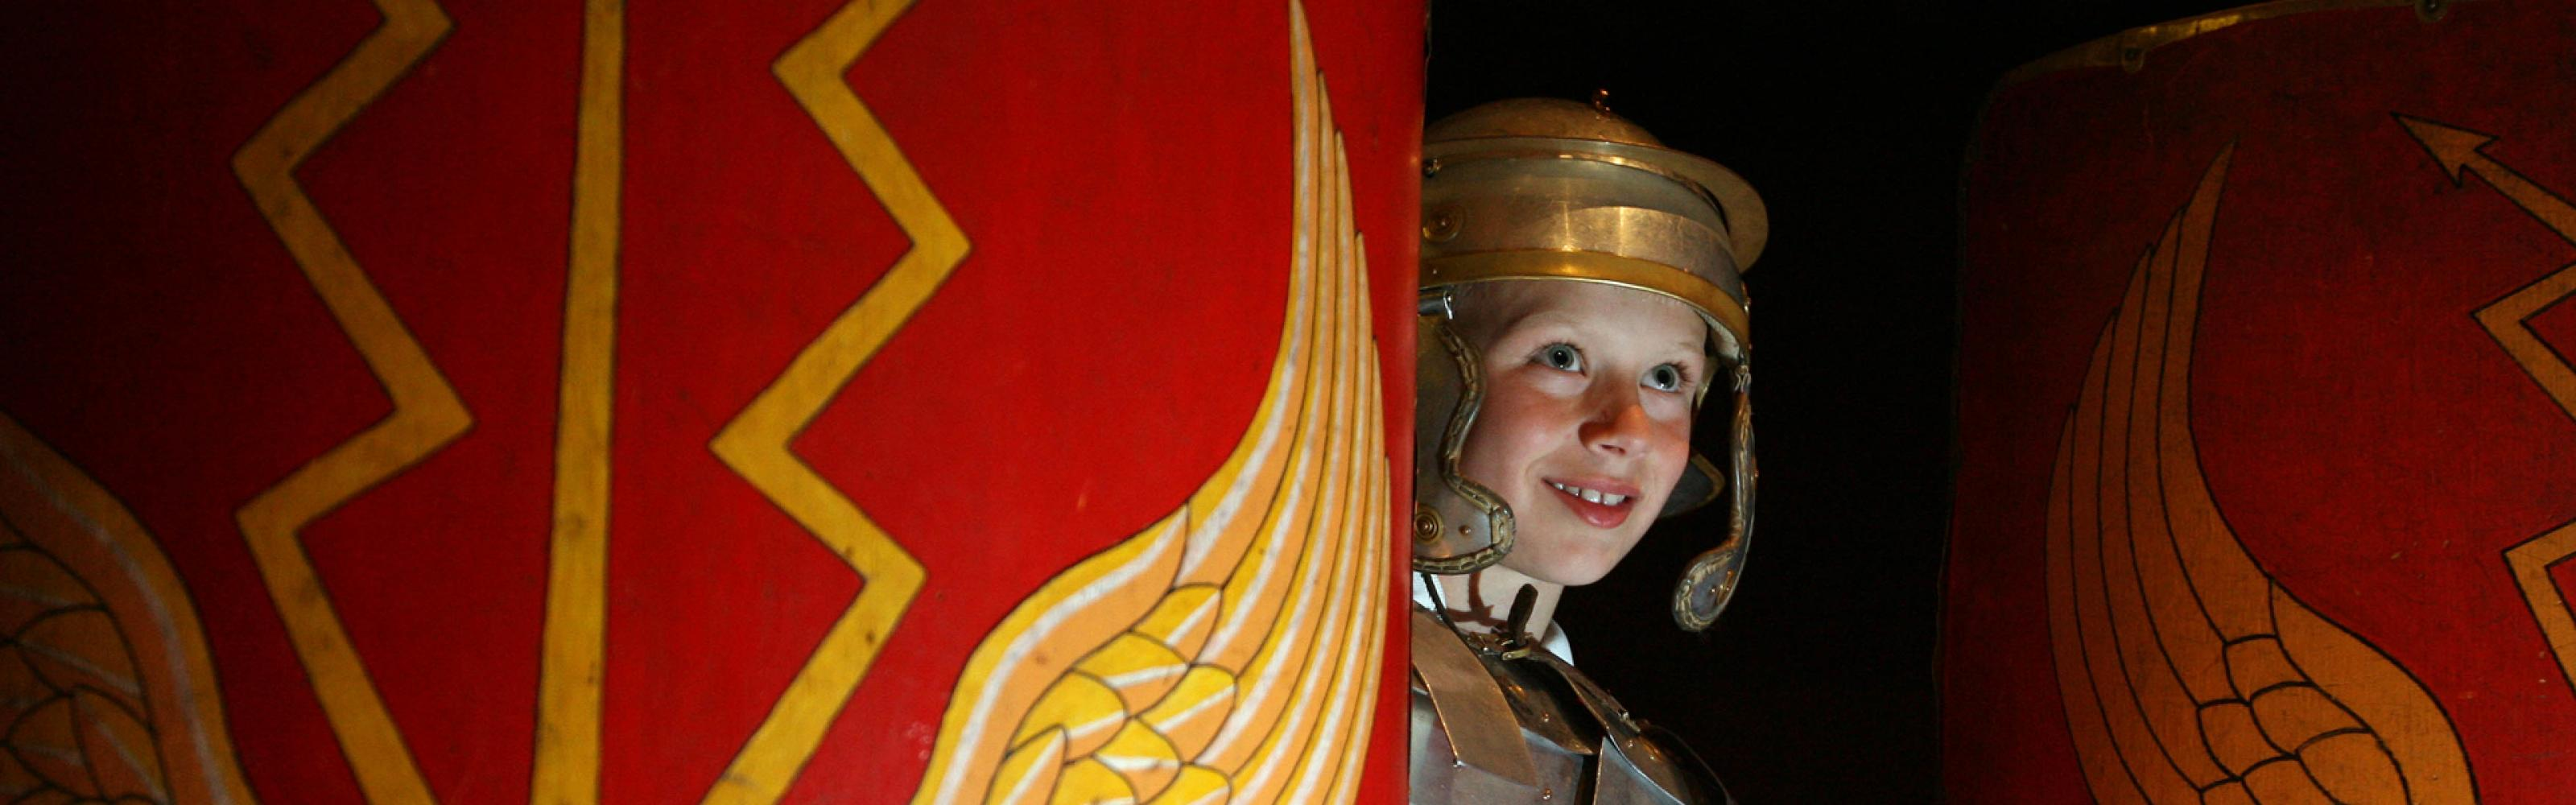 What to see and do at the National Roman Legion Museum